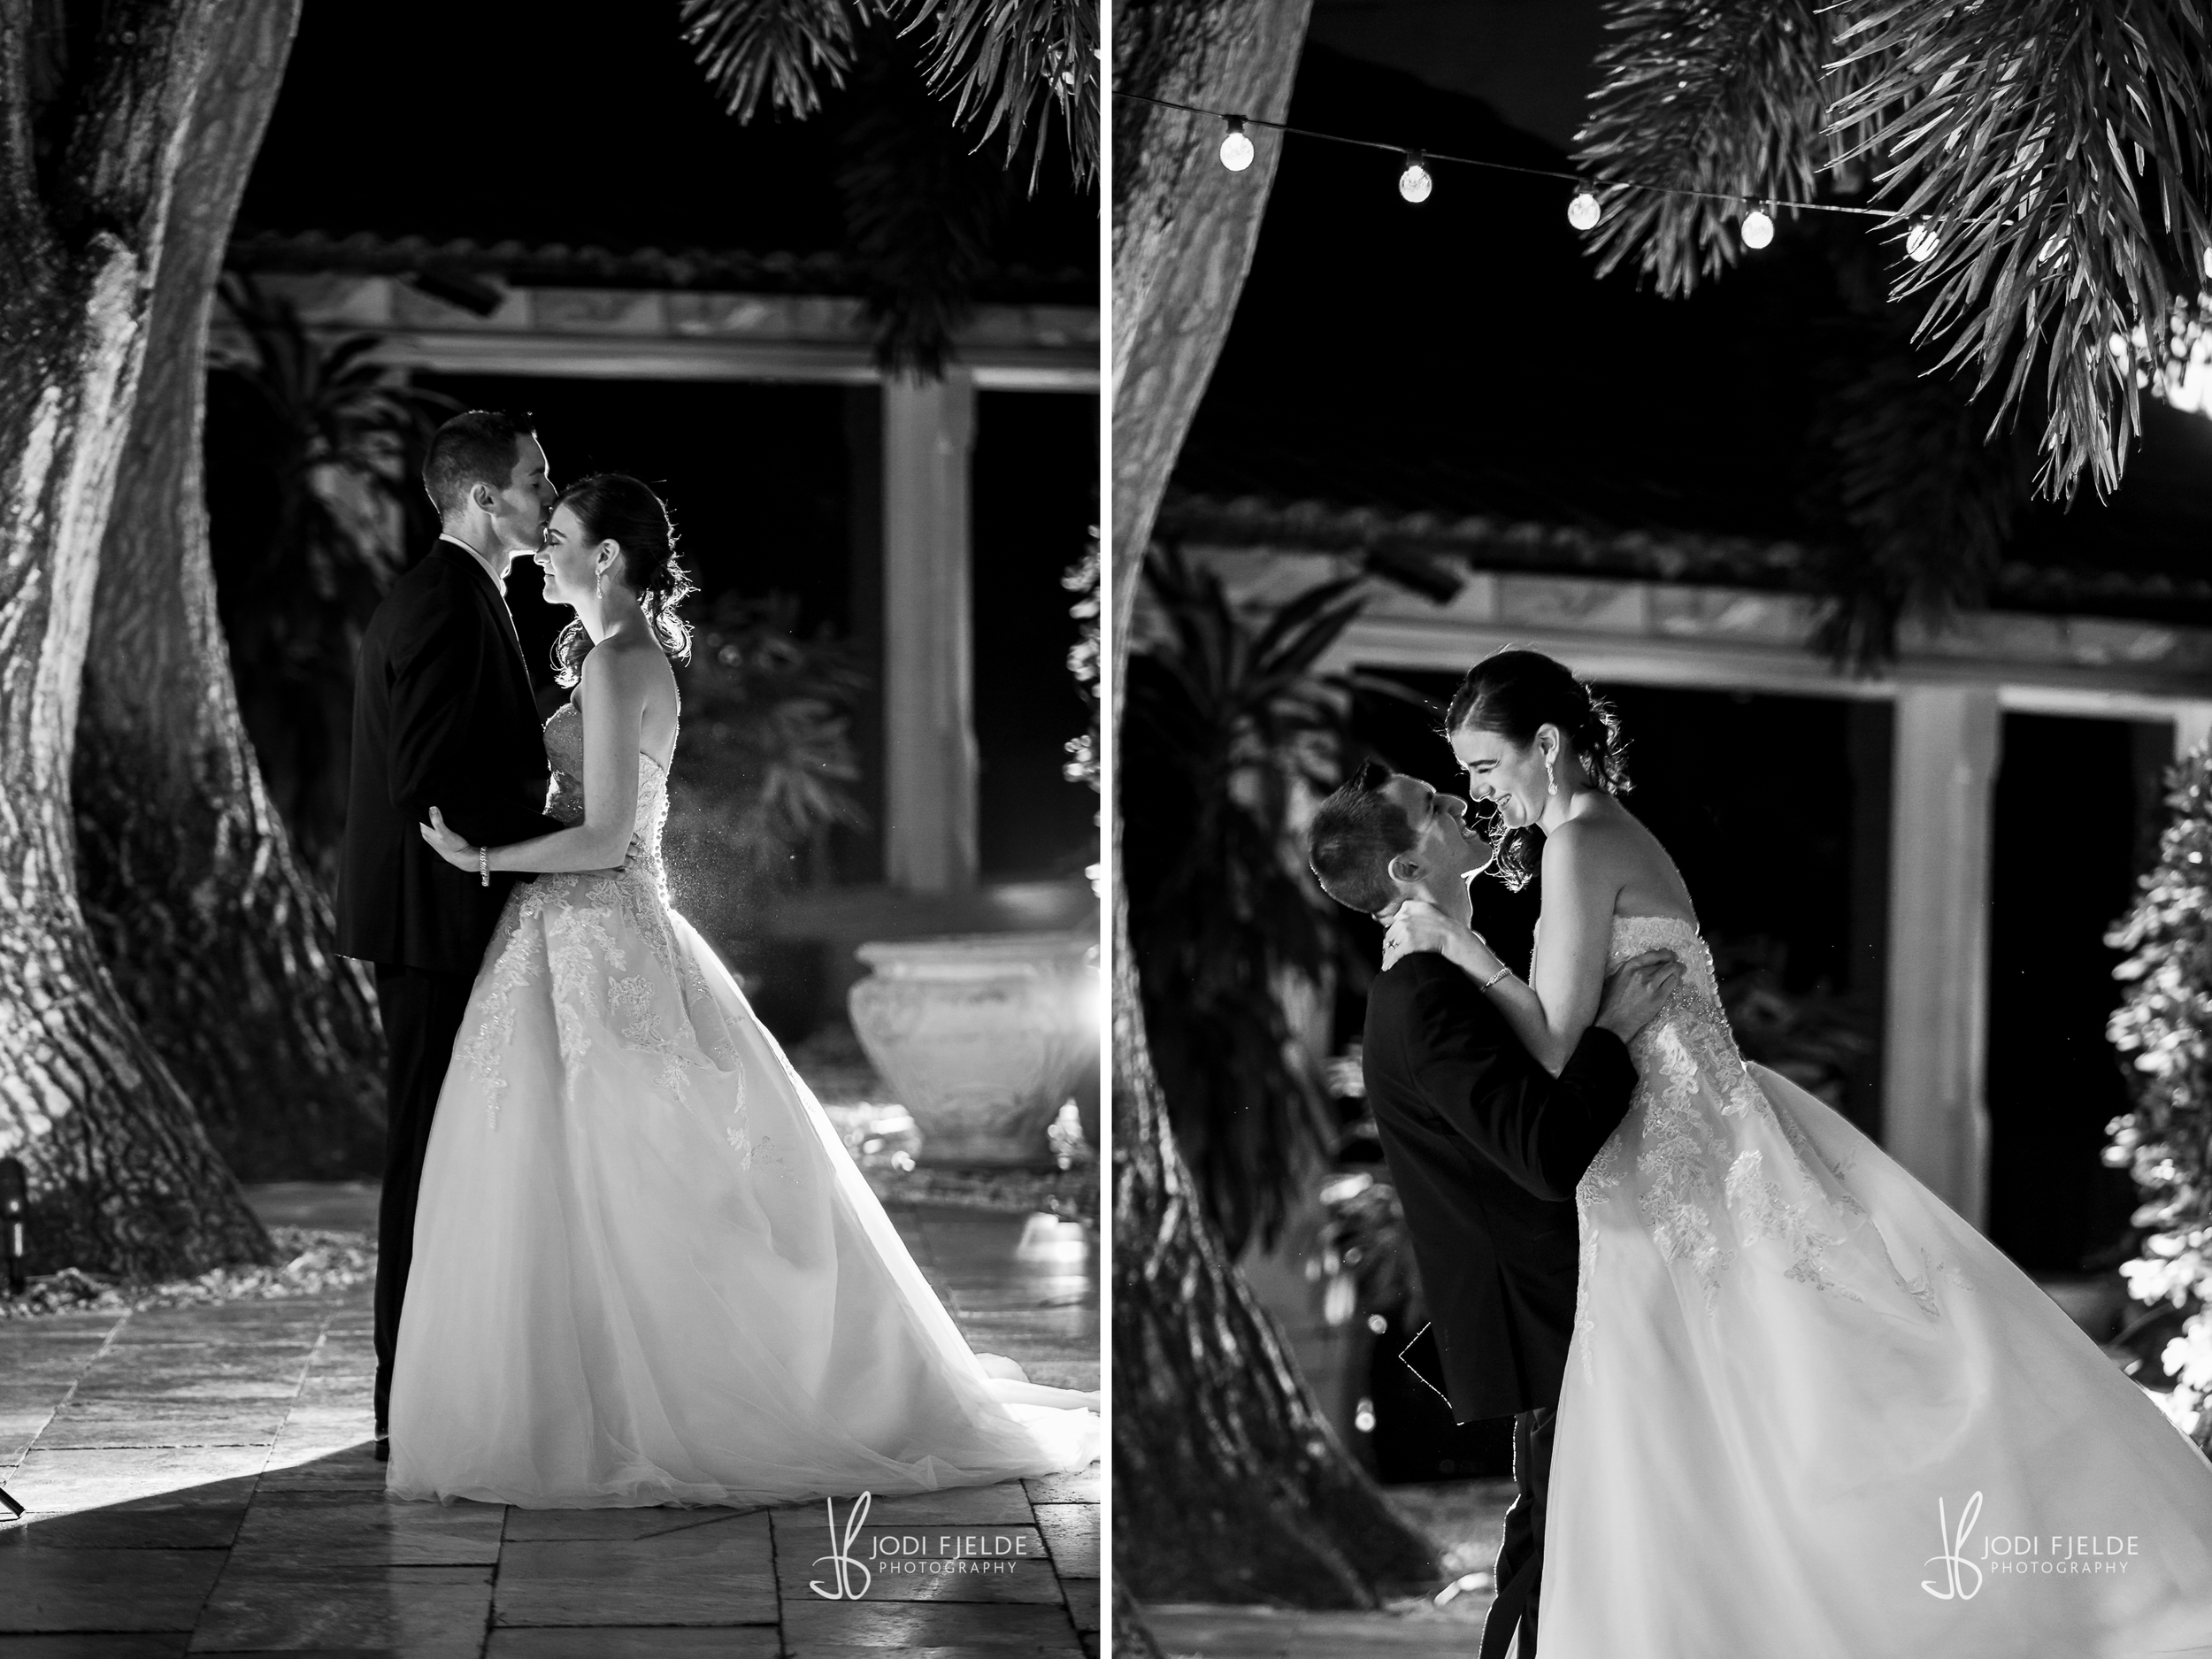 Benvenuto_Palm_Beach_Wedding_Jewish_Michelle & Jason_Jodi_Fjedle_Photography 79.jpg